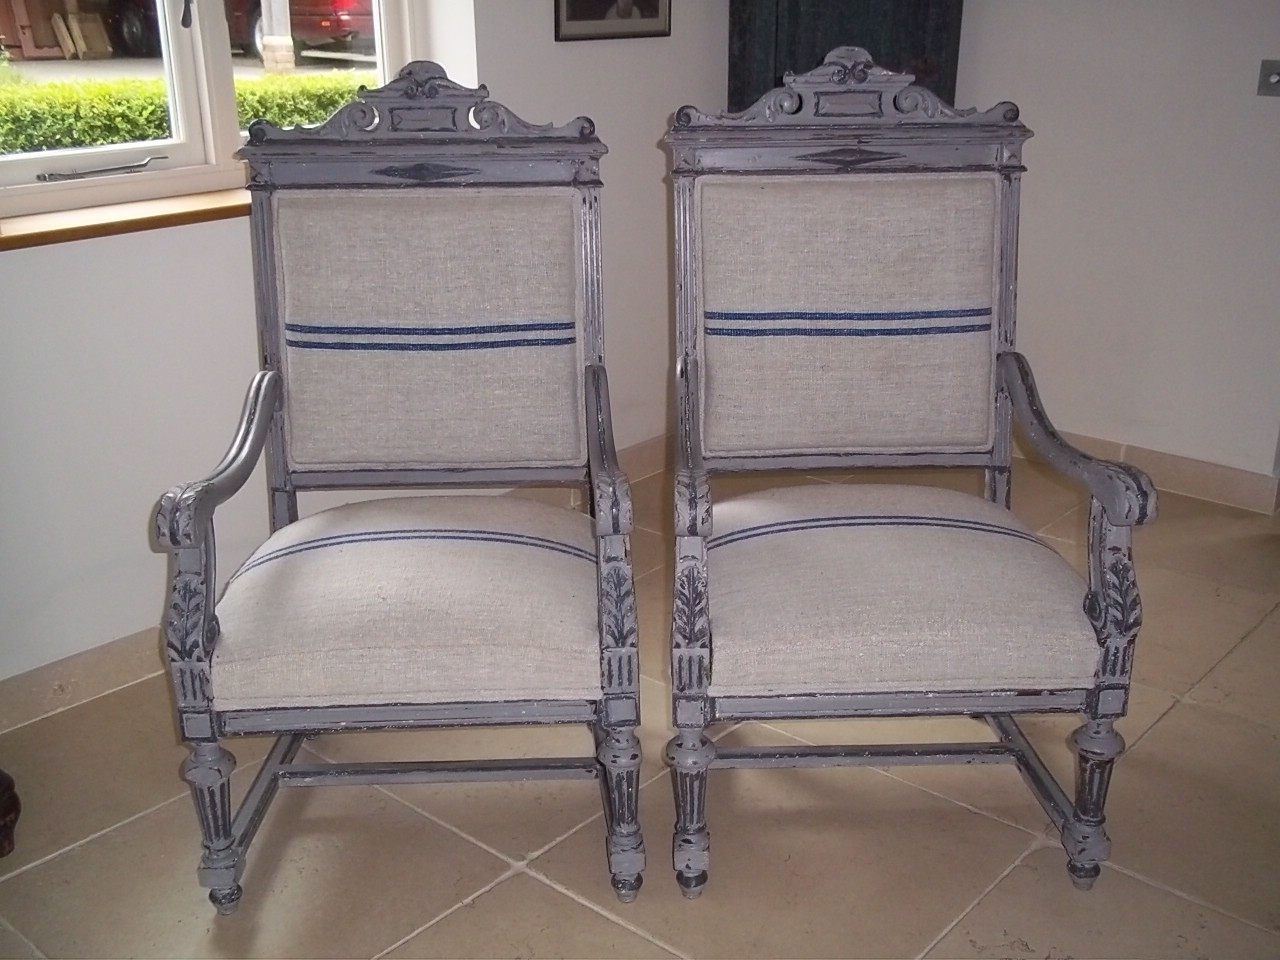 Are you looking for antique French armchairs? We have classic Provincial options available with us!